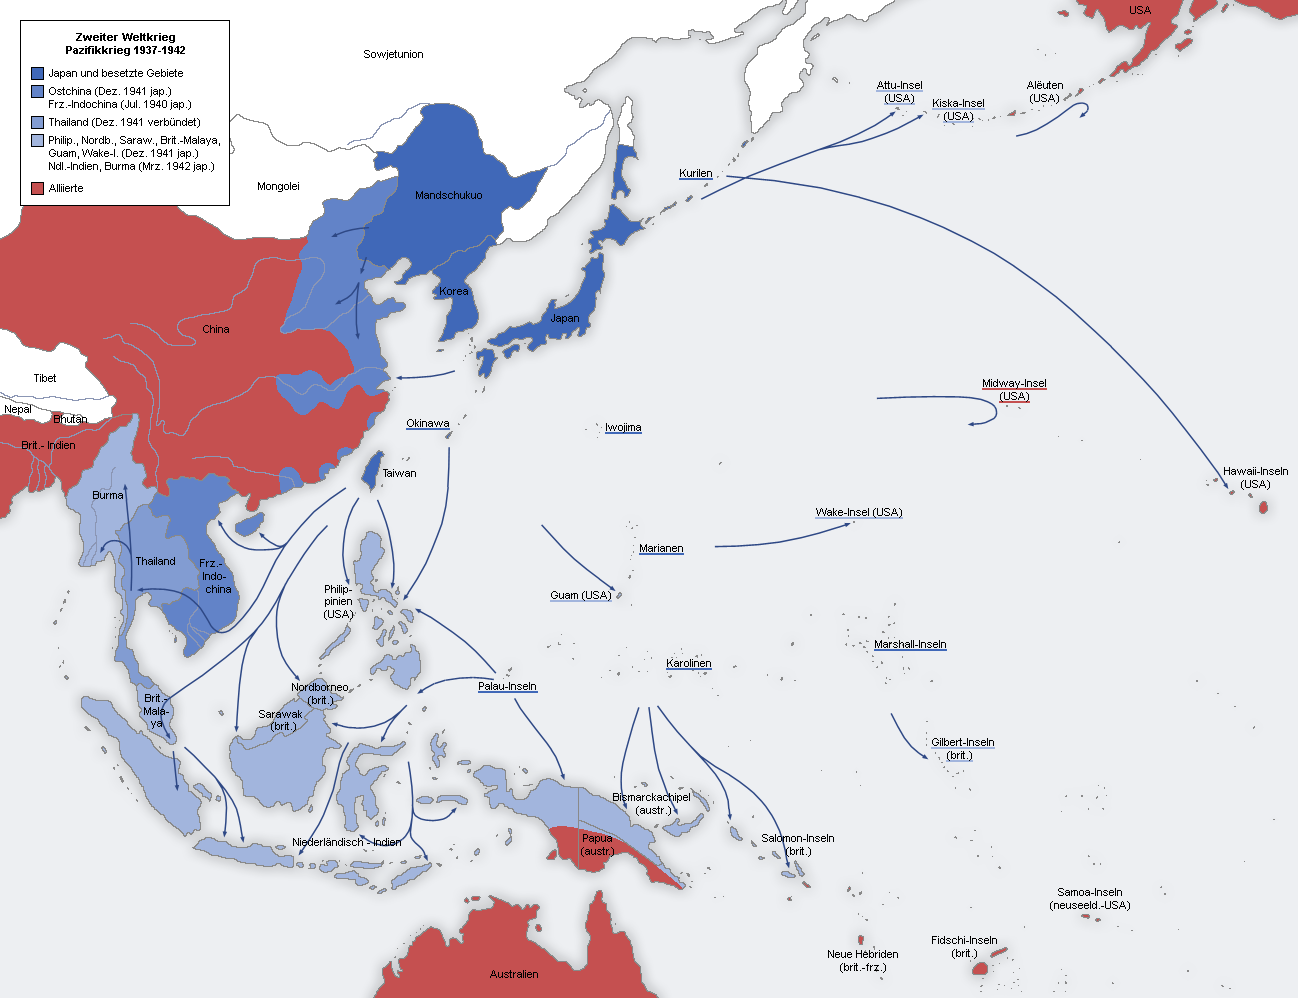 Second_world_war_asia_19371942_map_